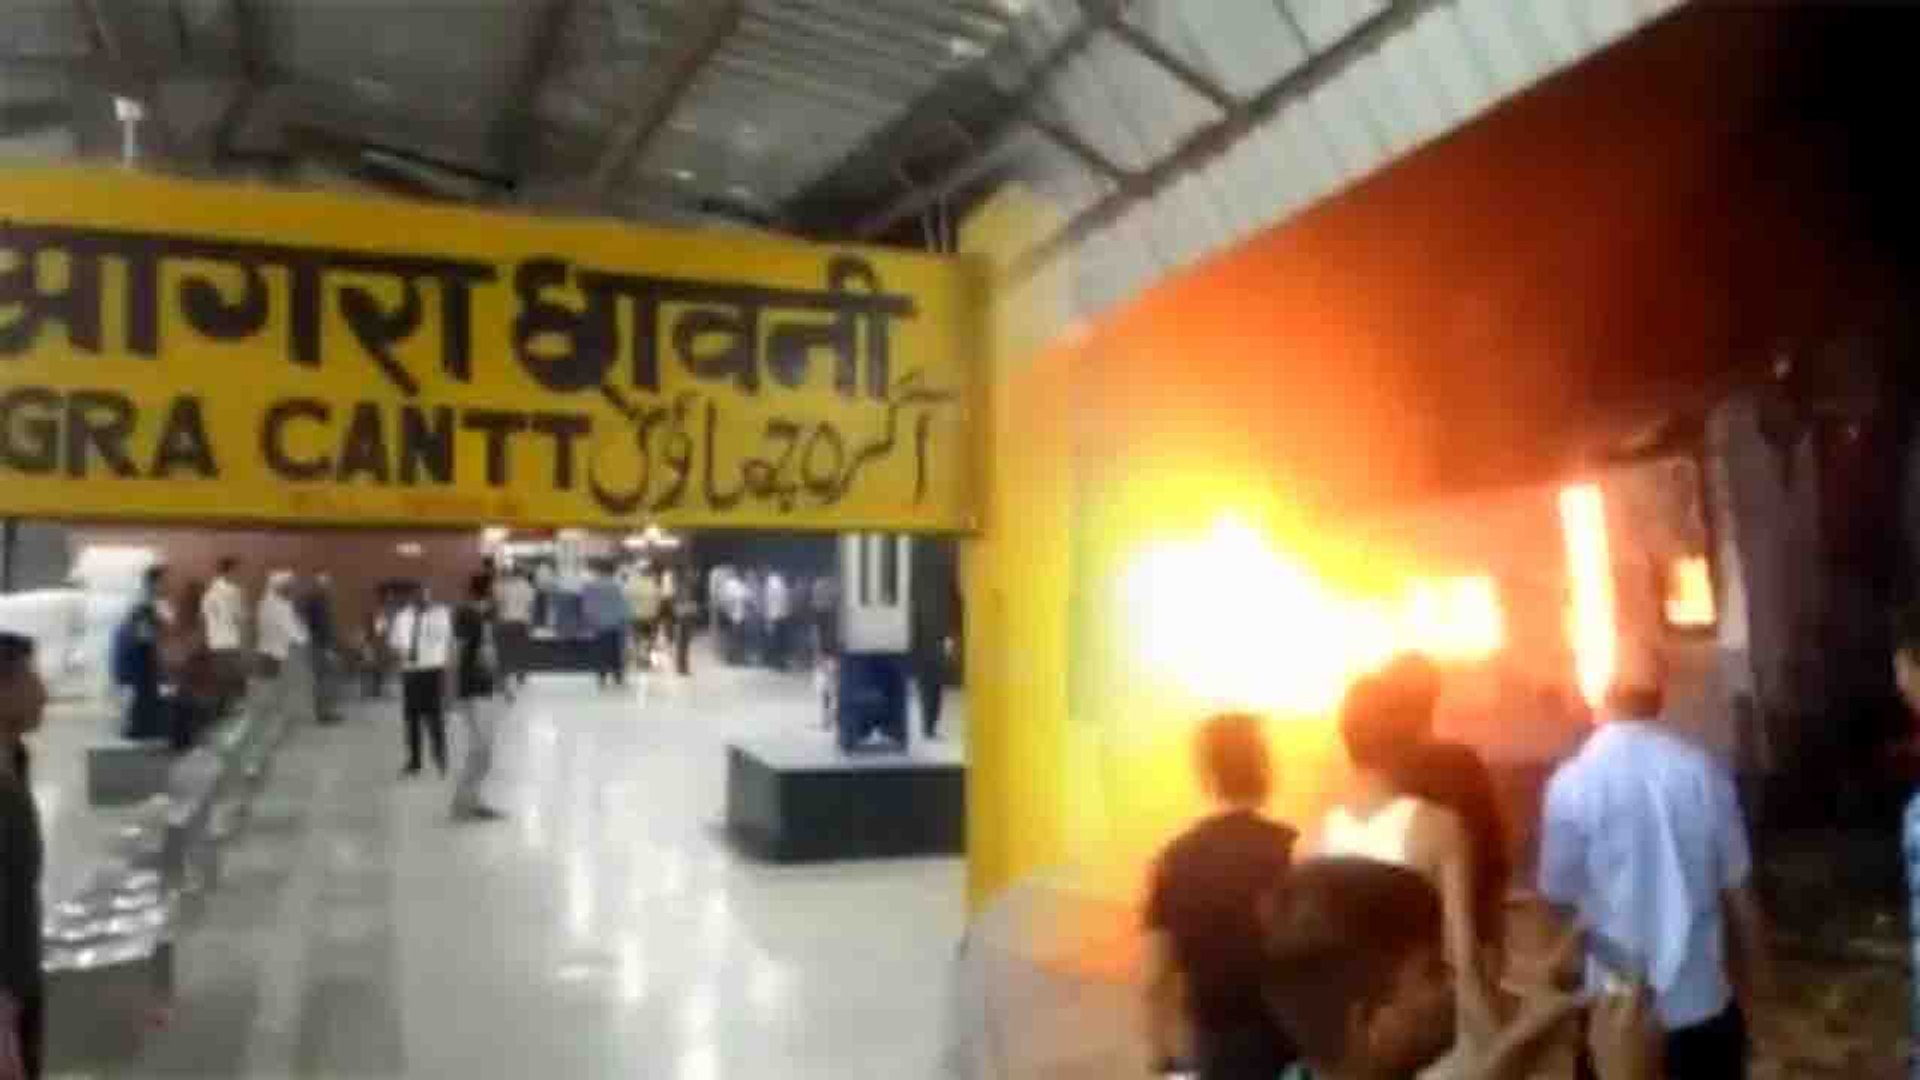 Indian Railways train catches fire at Agra Cantt Railway Station, Watch Video | Oneindia News